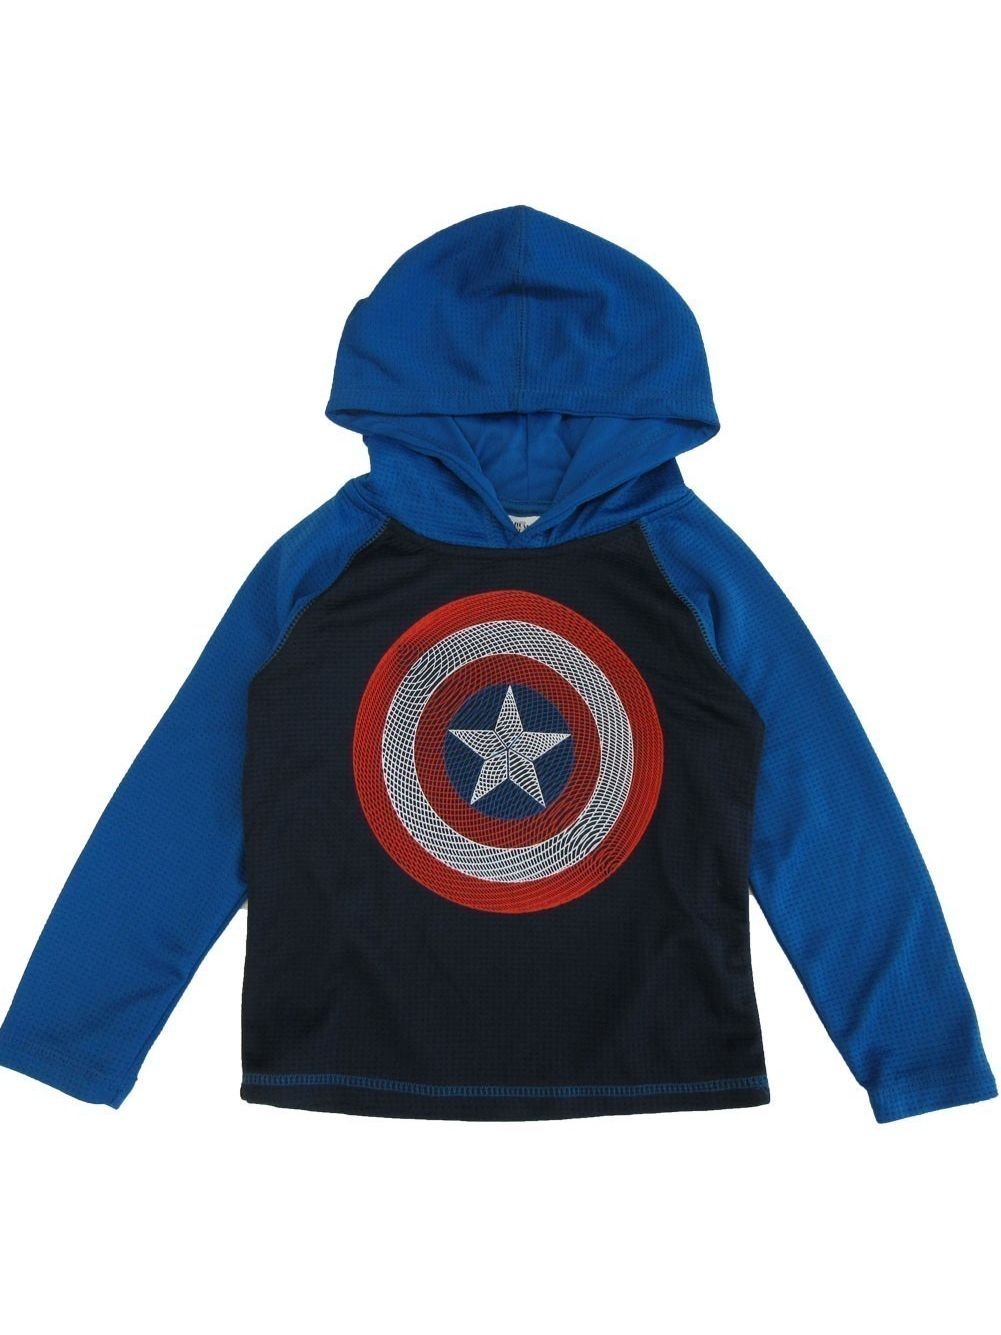 Lego Little Boys Royal Long Sleeve Capitan America Long Sleeve Shirt 4-7